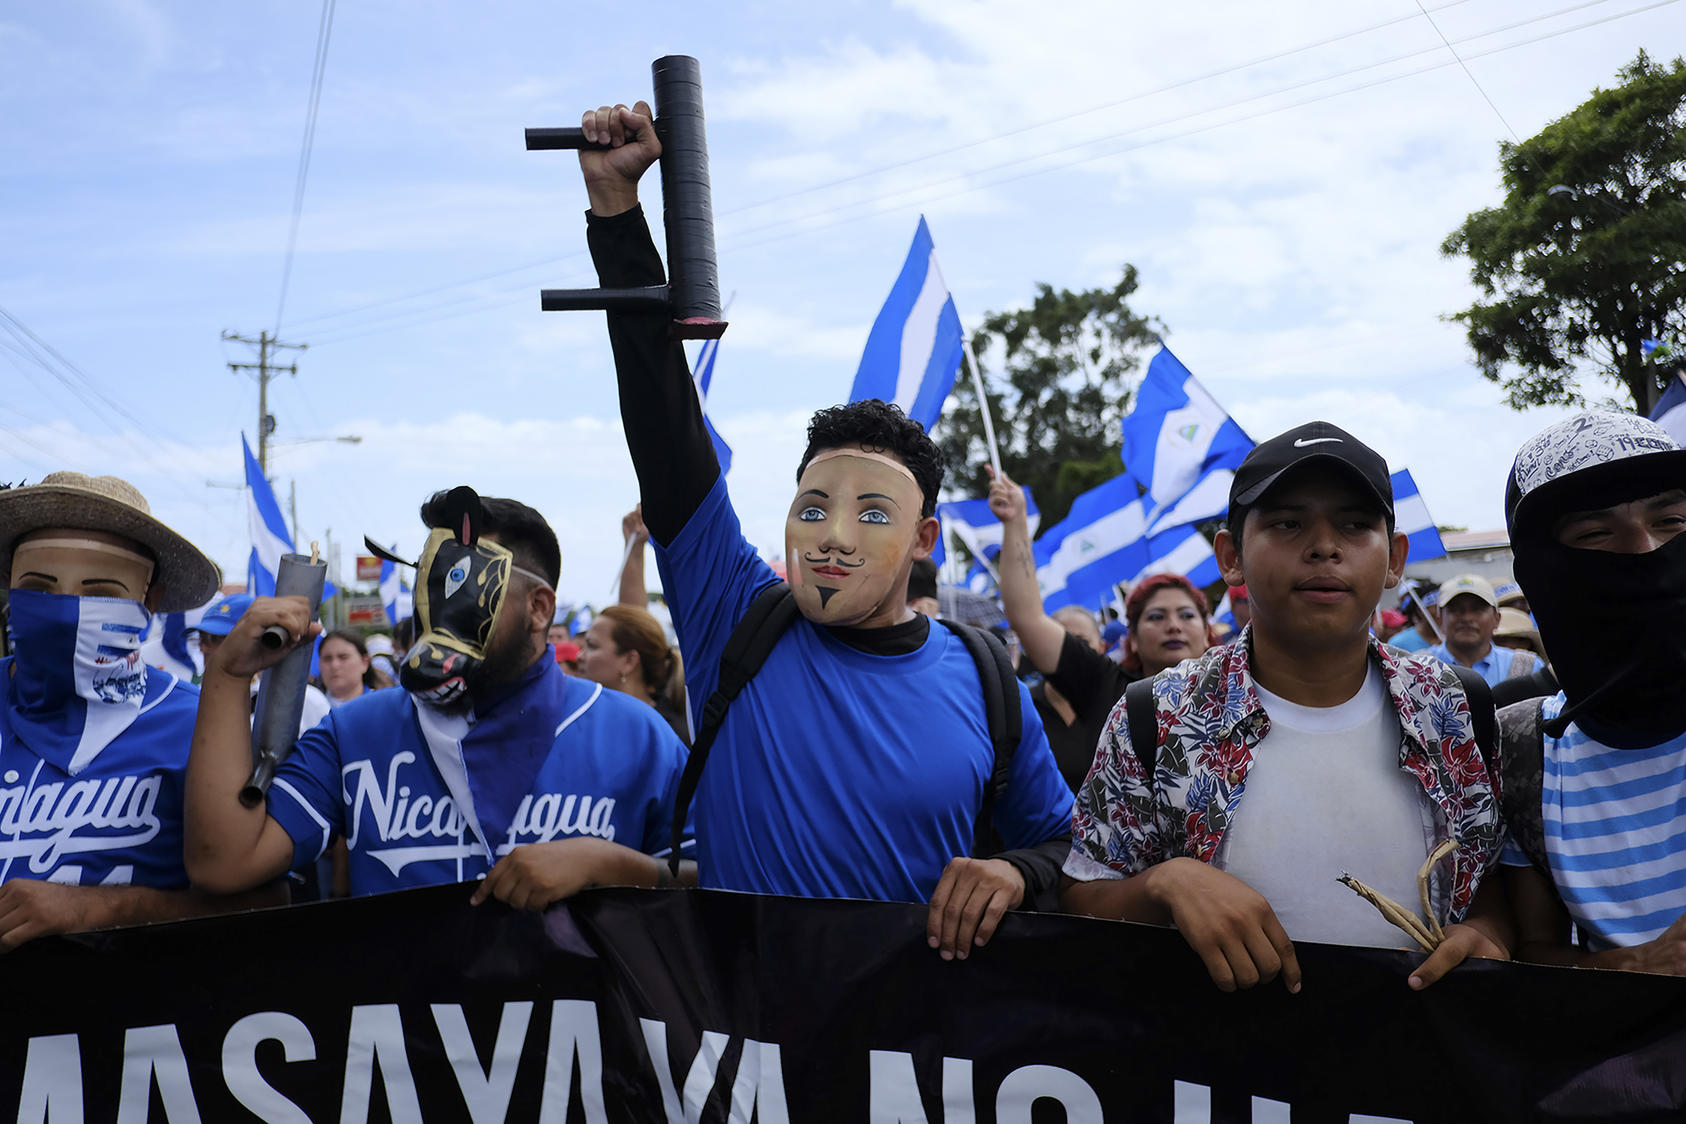 Protesters wearing folkloric masks and carrying crude, homemade mortars march through Managua, Nicaragua, July 12, 2018. (Brent McDonald/The New York Times)